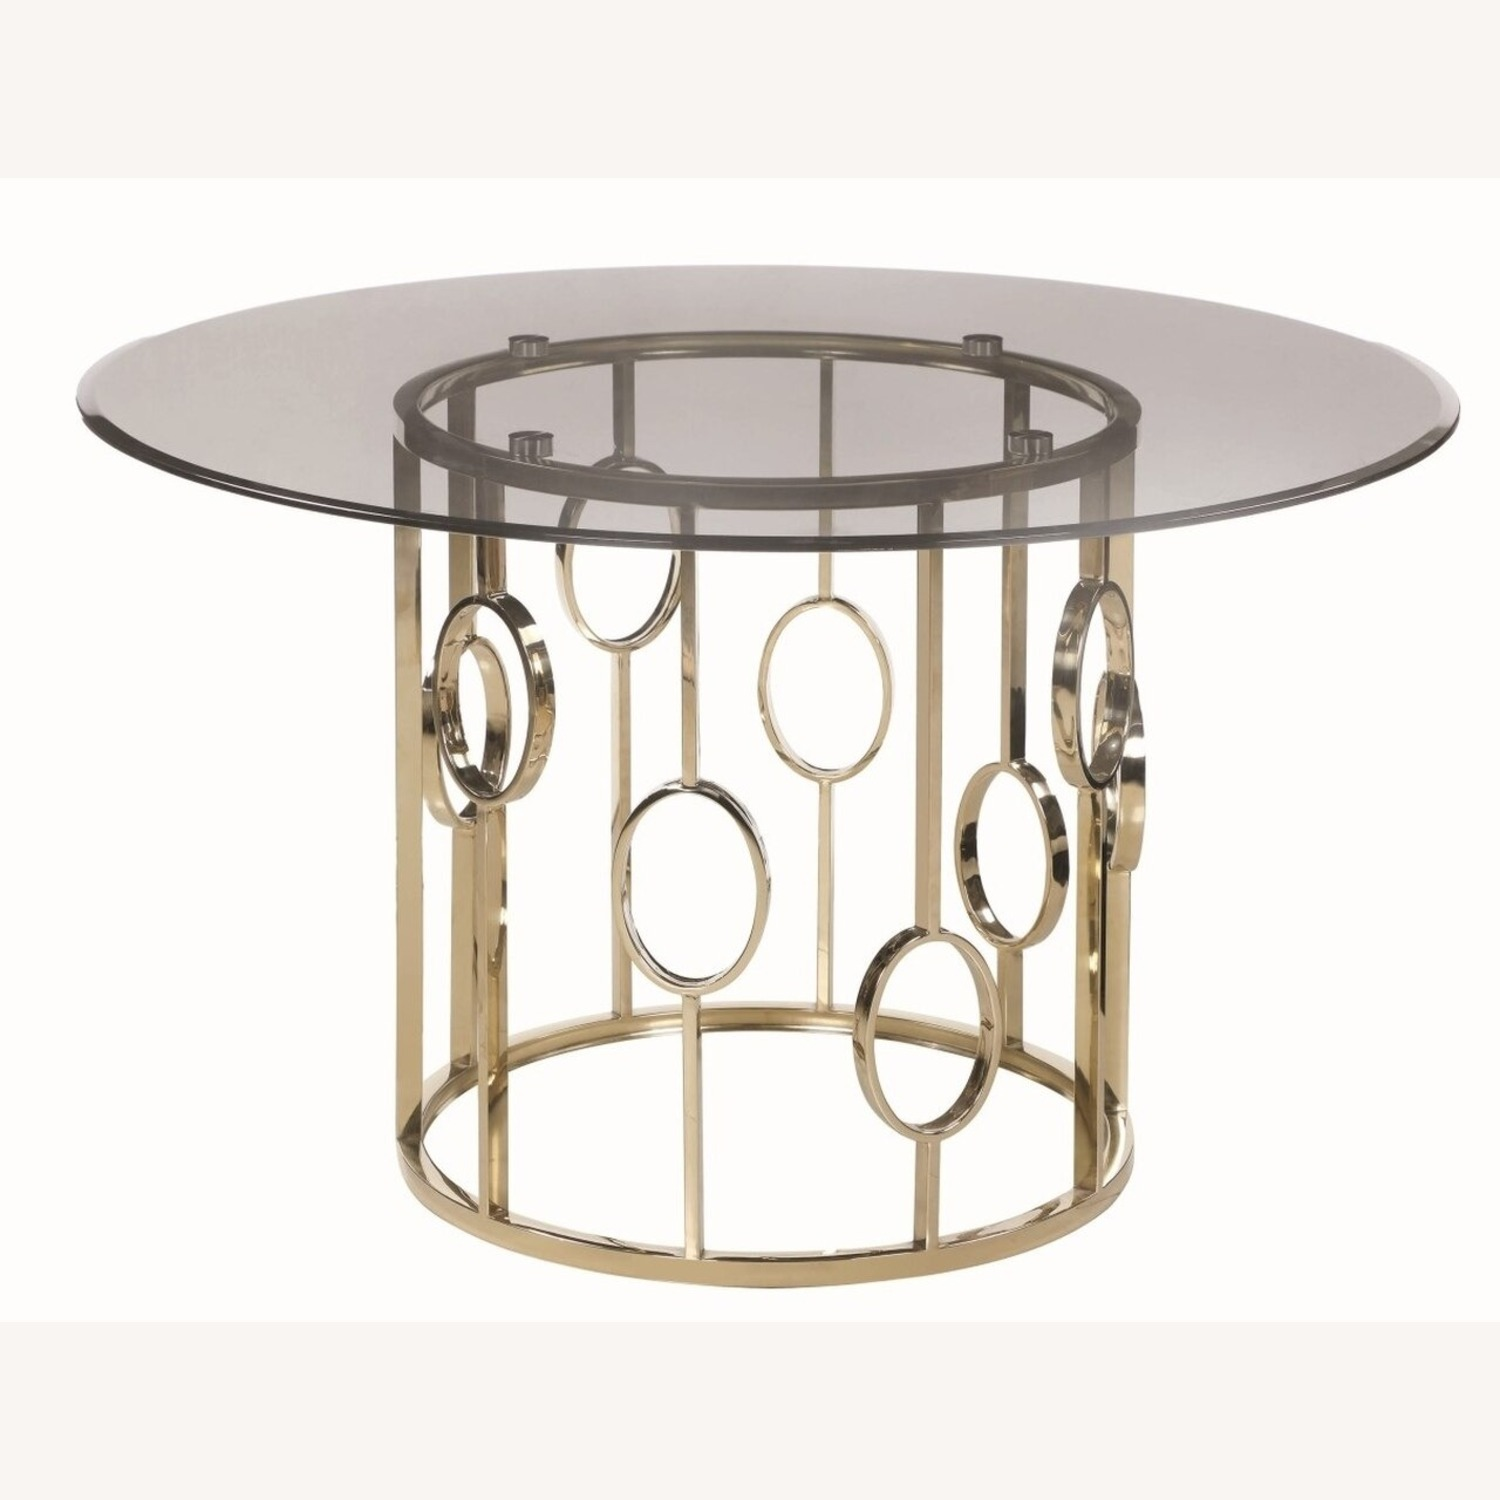 Elegant Round Dining Table In Smoke Glass Top - image-1